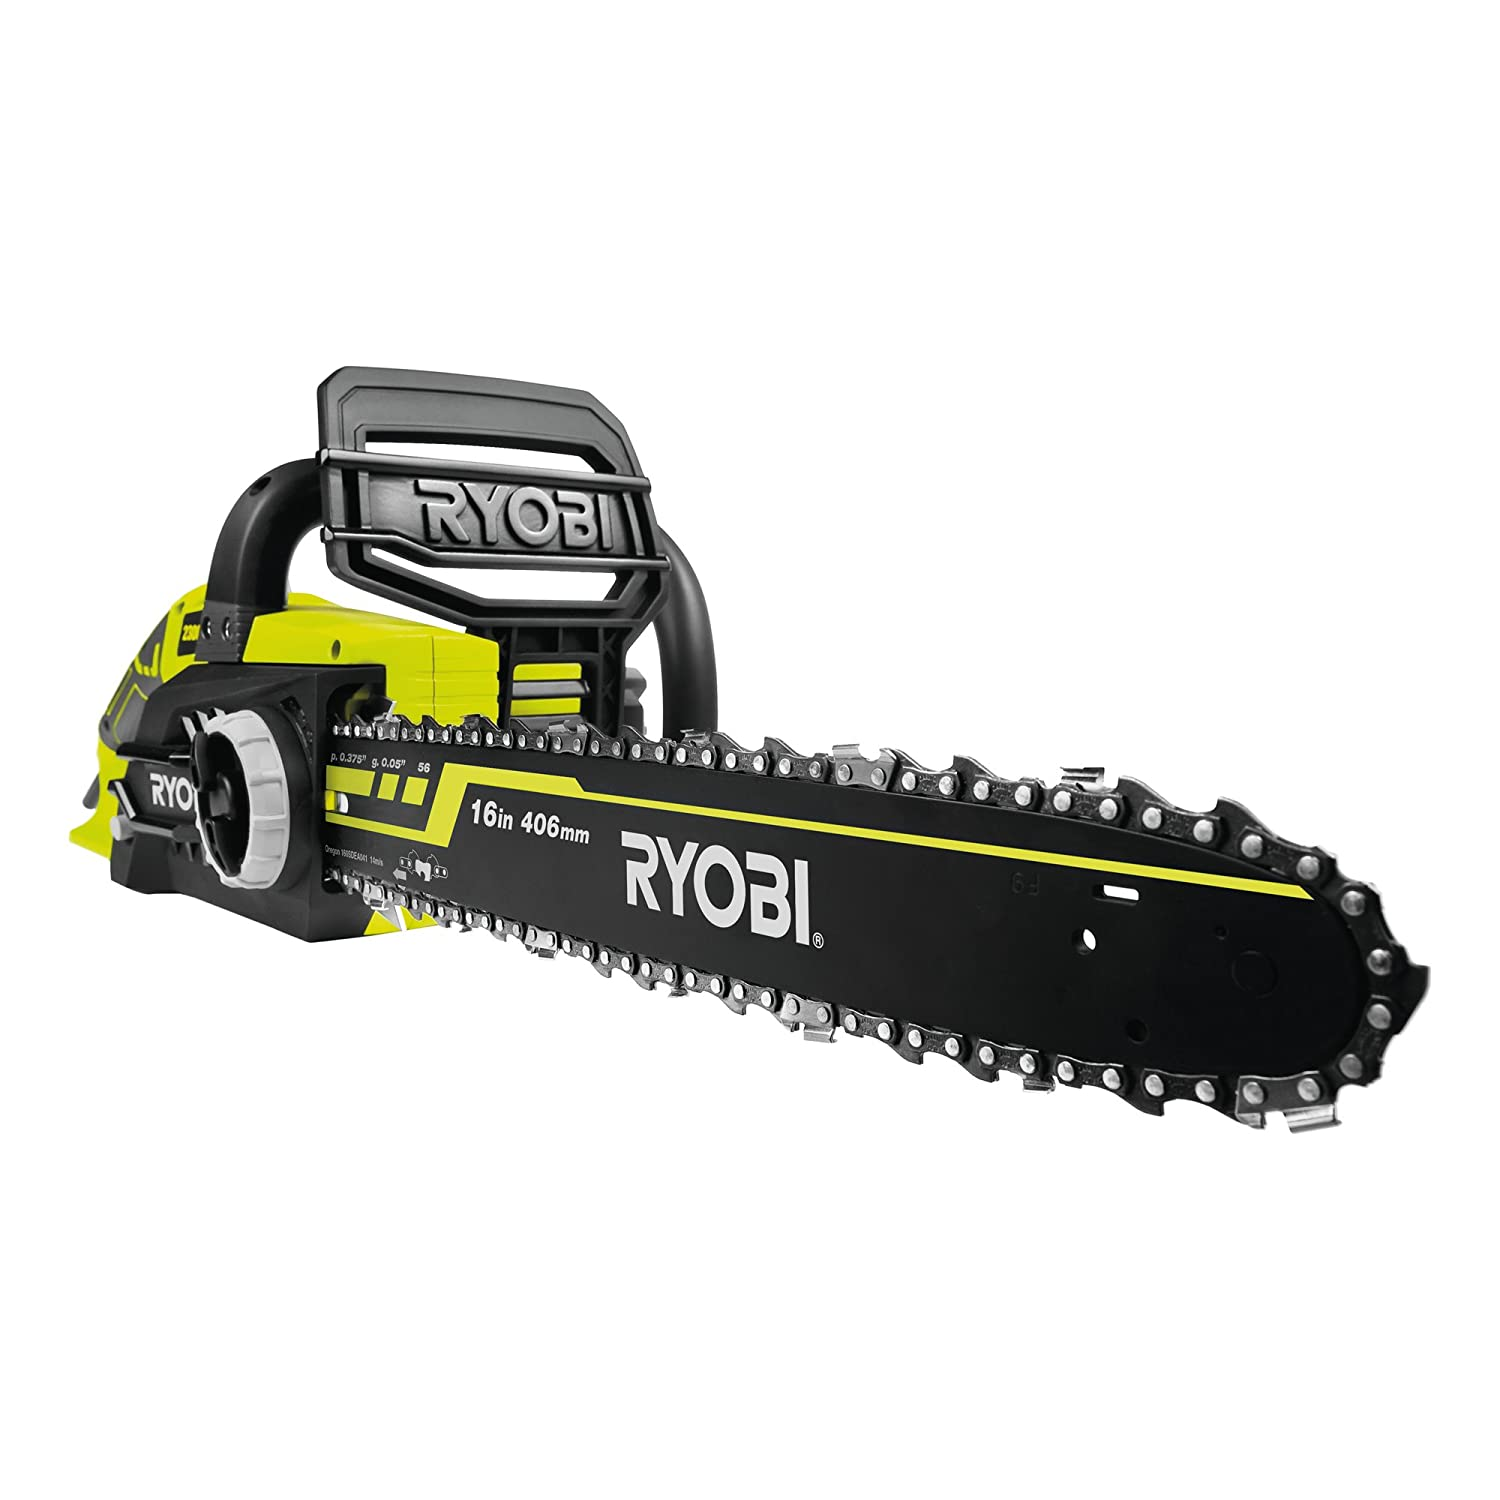 Ryobi rcs2340 chainsaw 2300 w greenblack amazon diy tools keyboard keysfo Choice Image